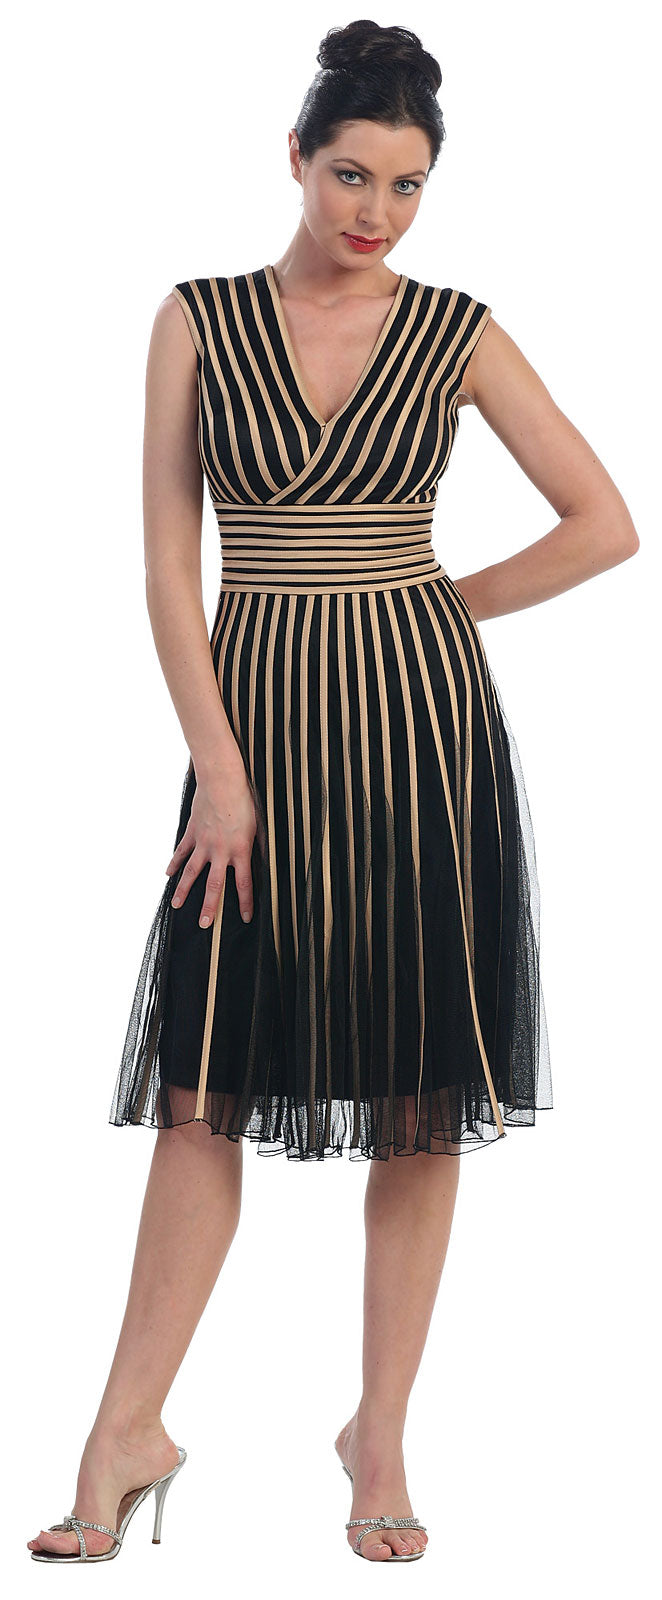 Main image of Mesh Tea Length Formal Dress With Striped Detail